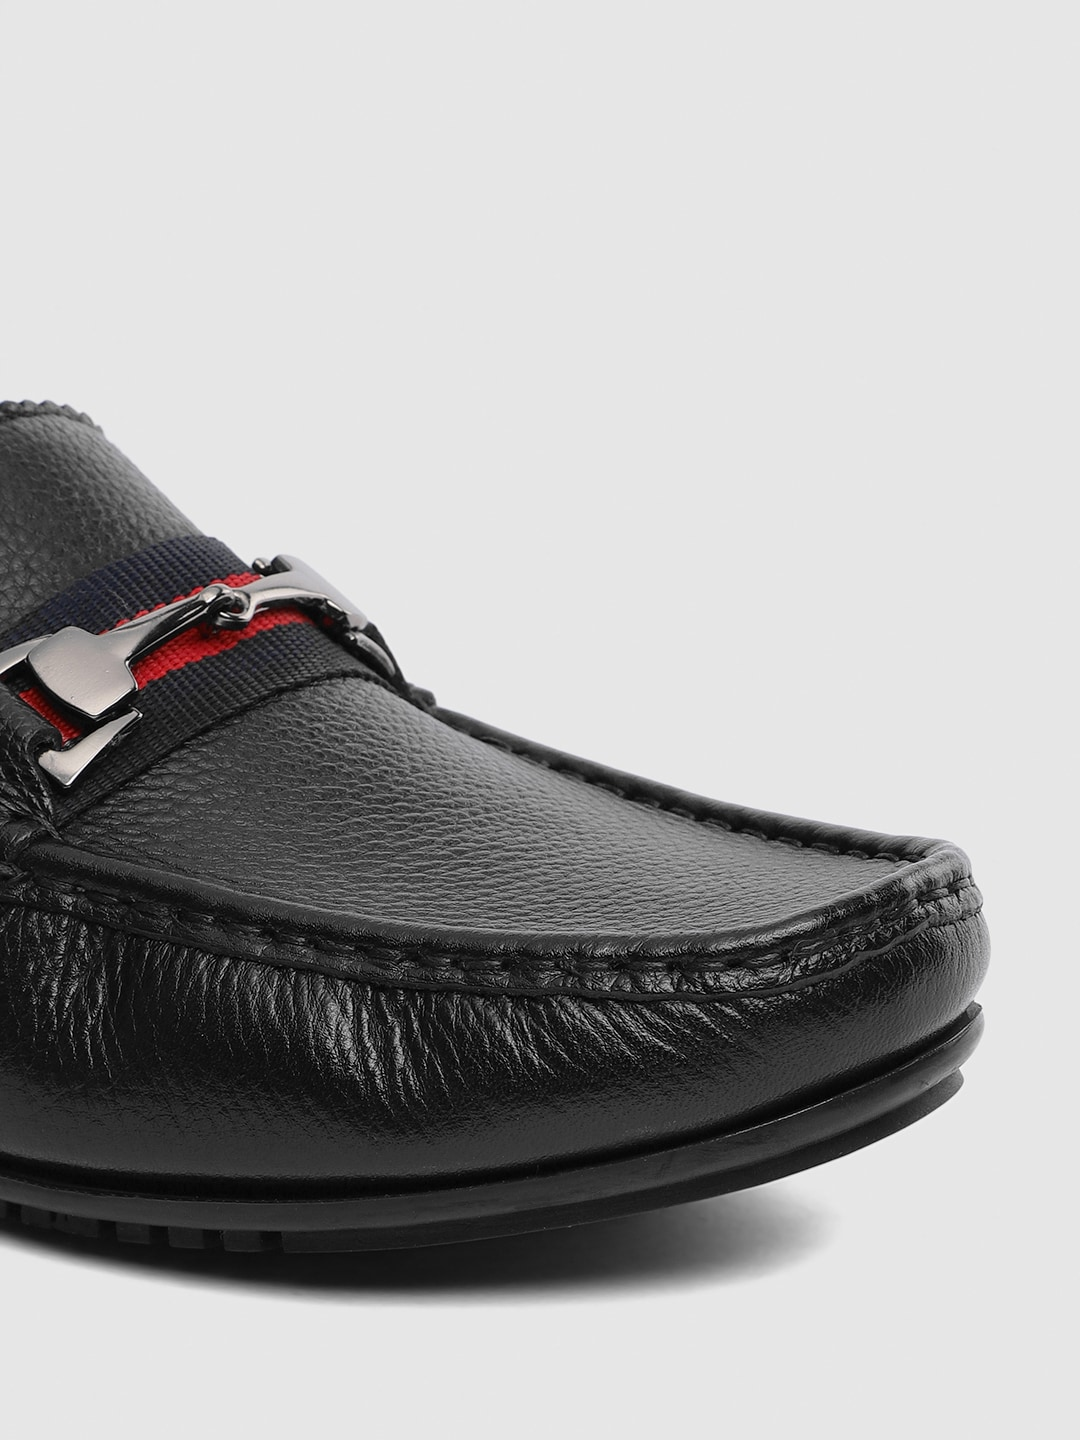 V8 by Ruosh Men Black Leather Driving Shoes